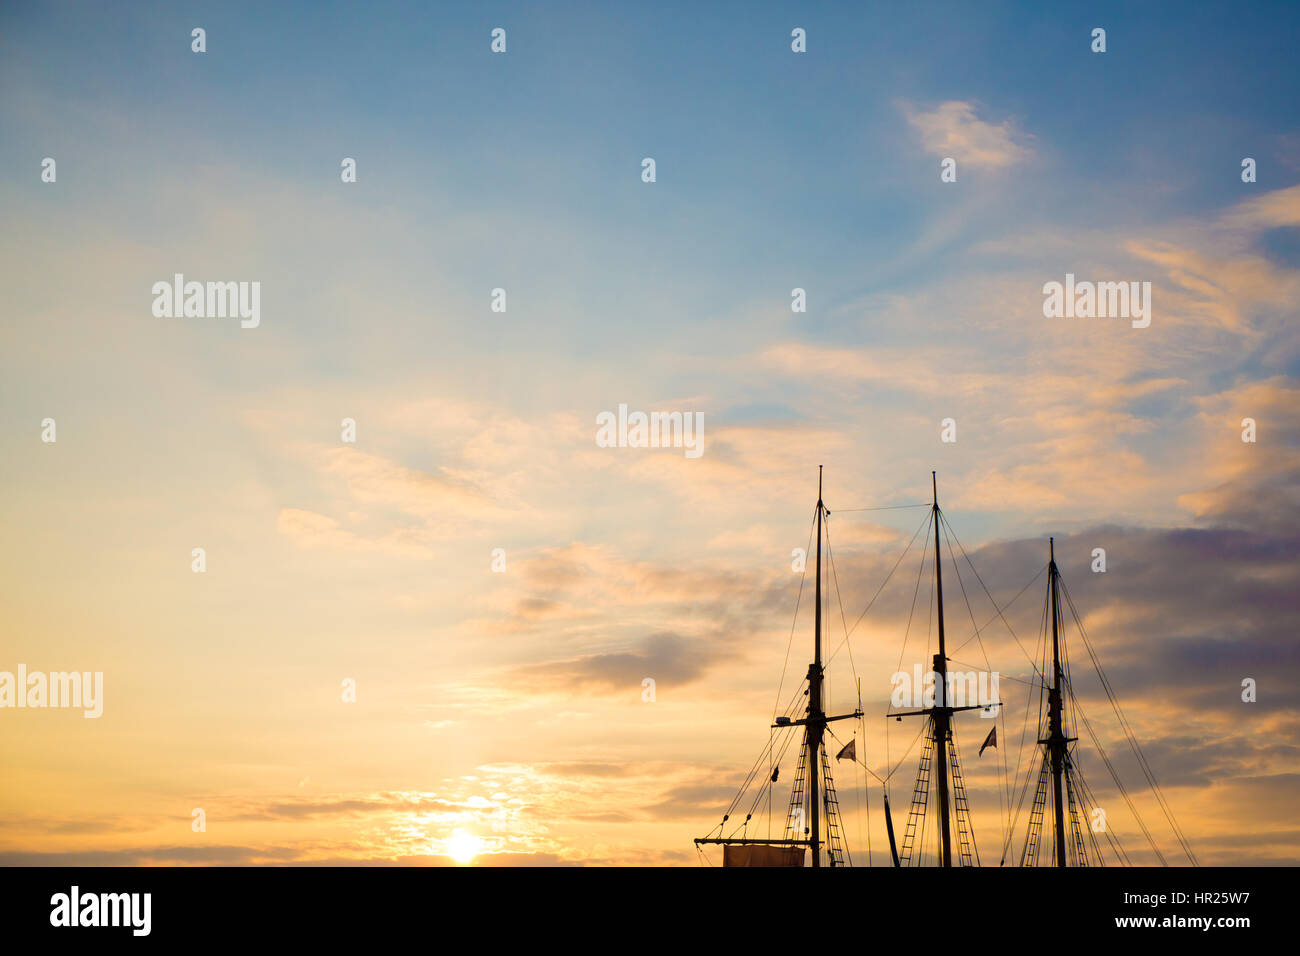 Sunset Over The Ships At Albert Dock, Liverpool, UK - Photo Credit: Michelle Roberts - Stock Image